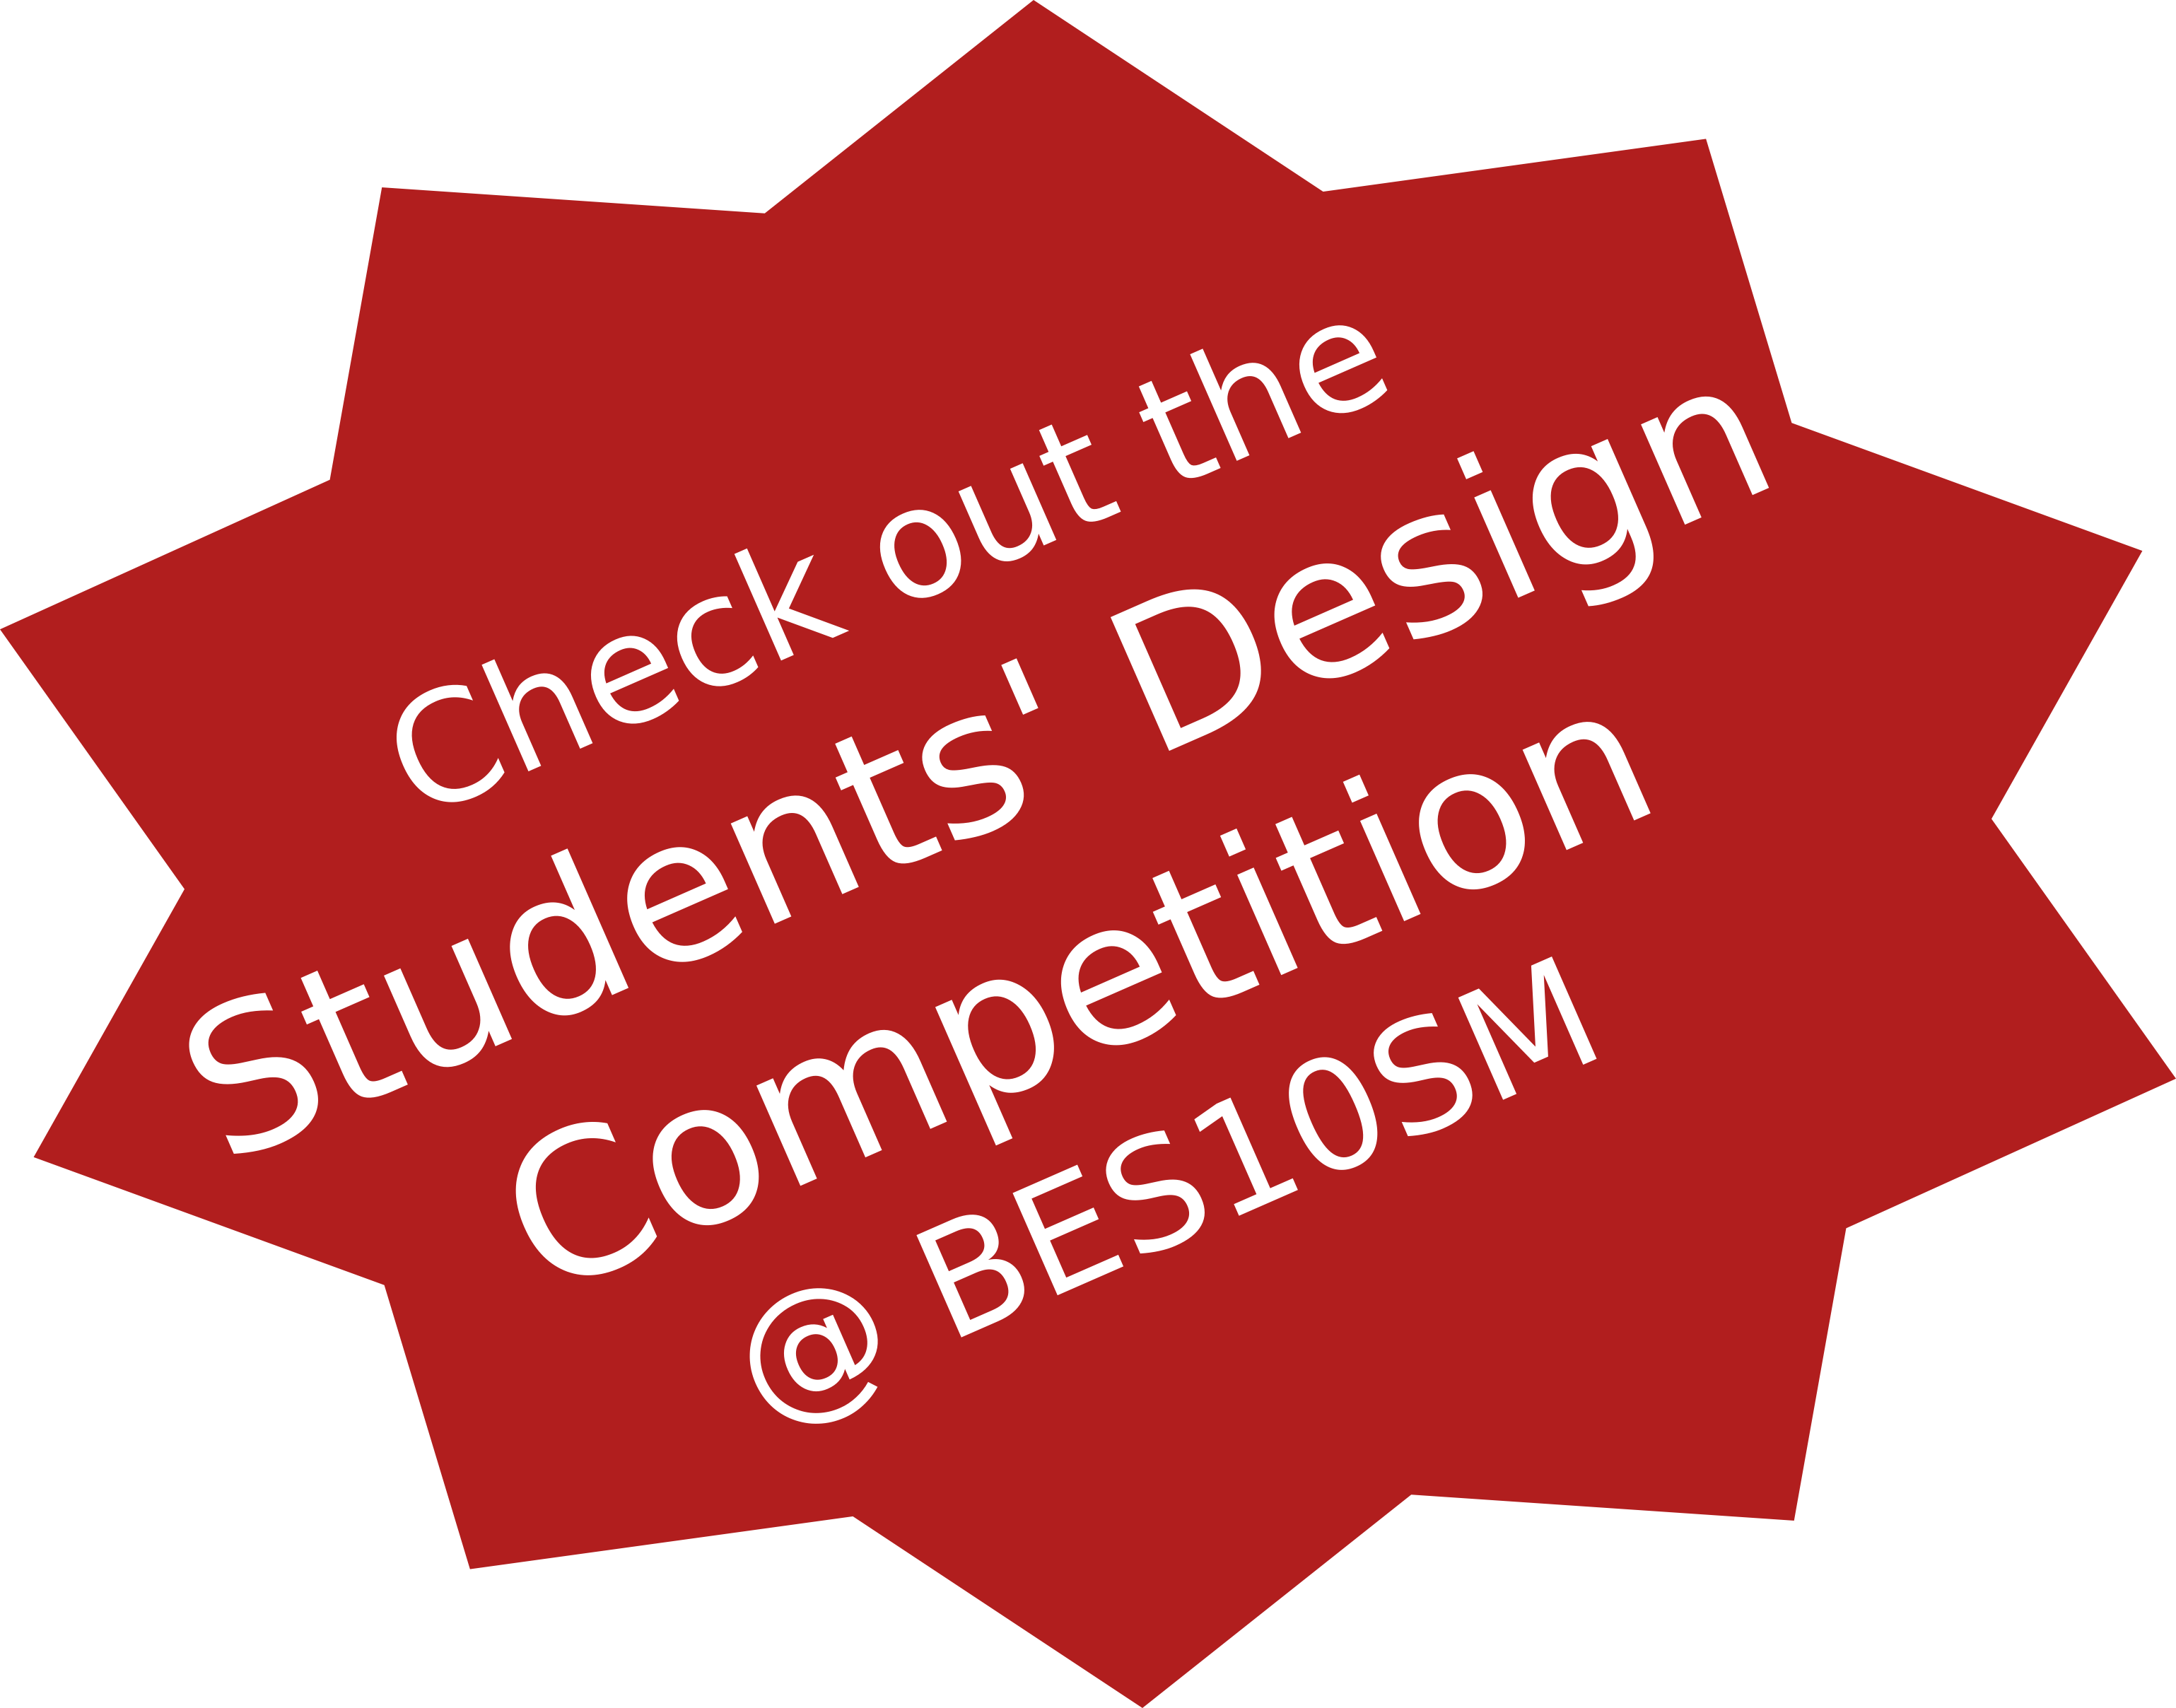 Poster design contest 2016 -  May 14th 2016 Bes10sm Conference